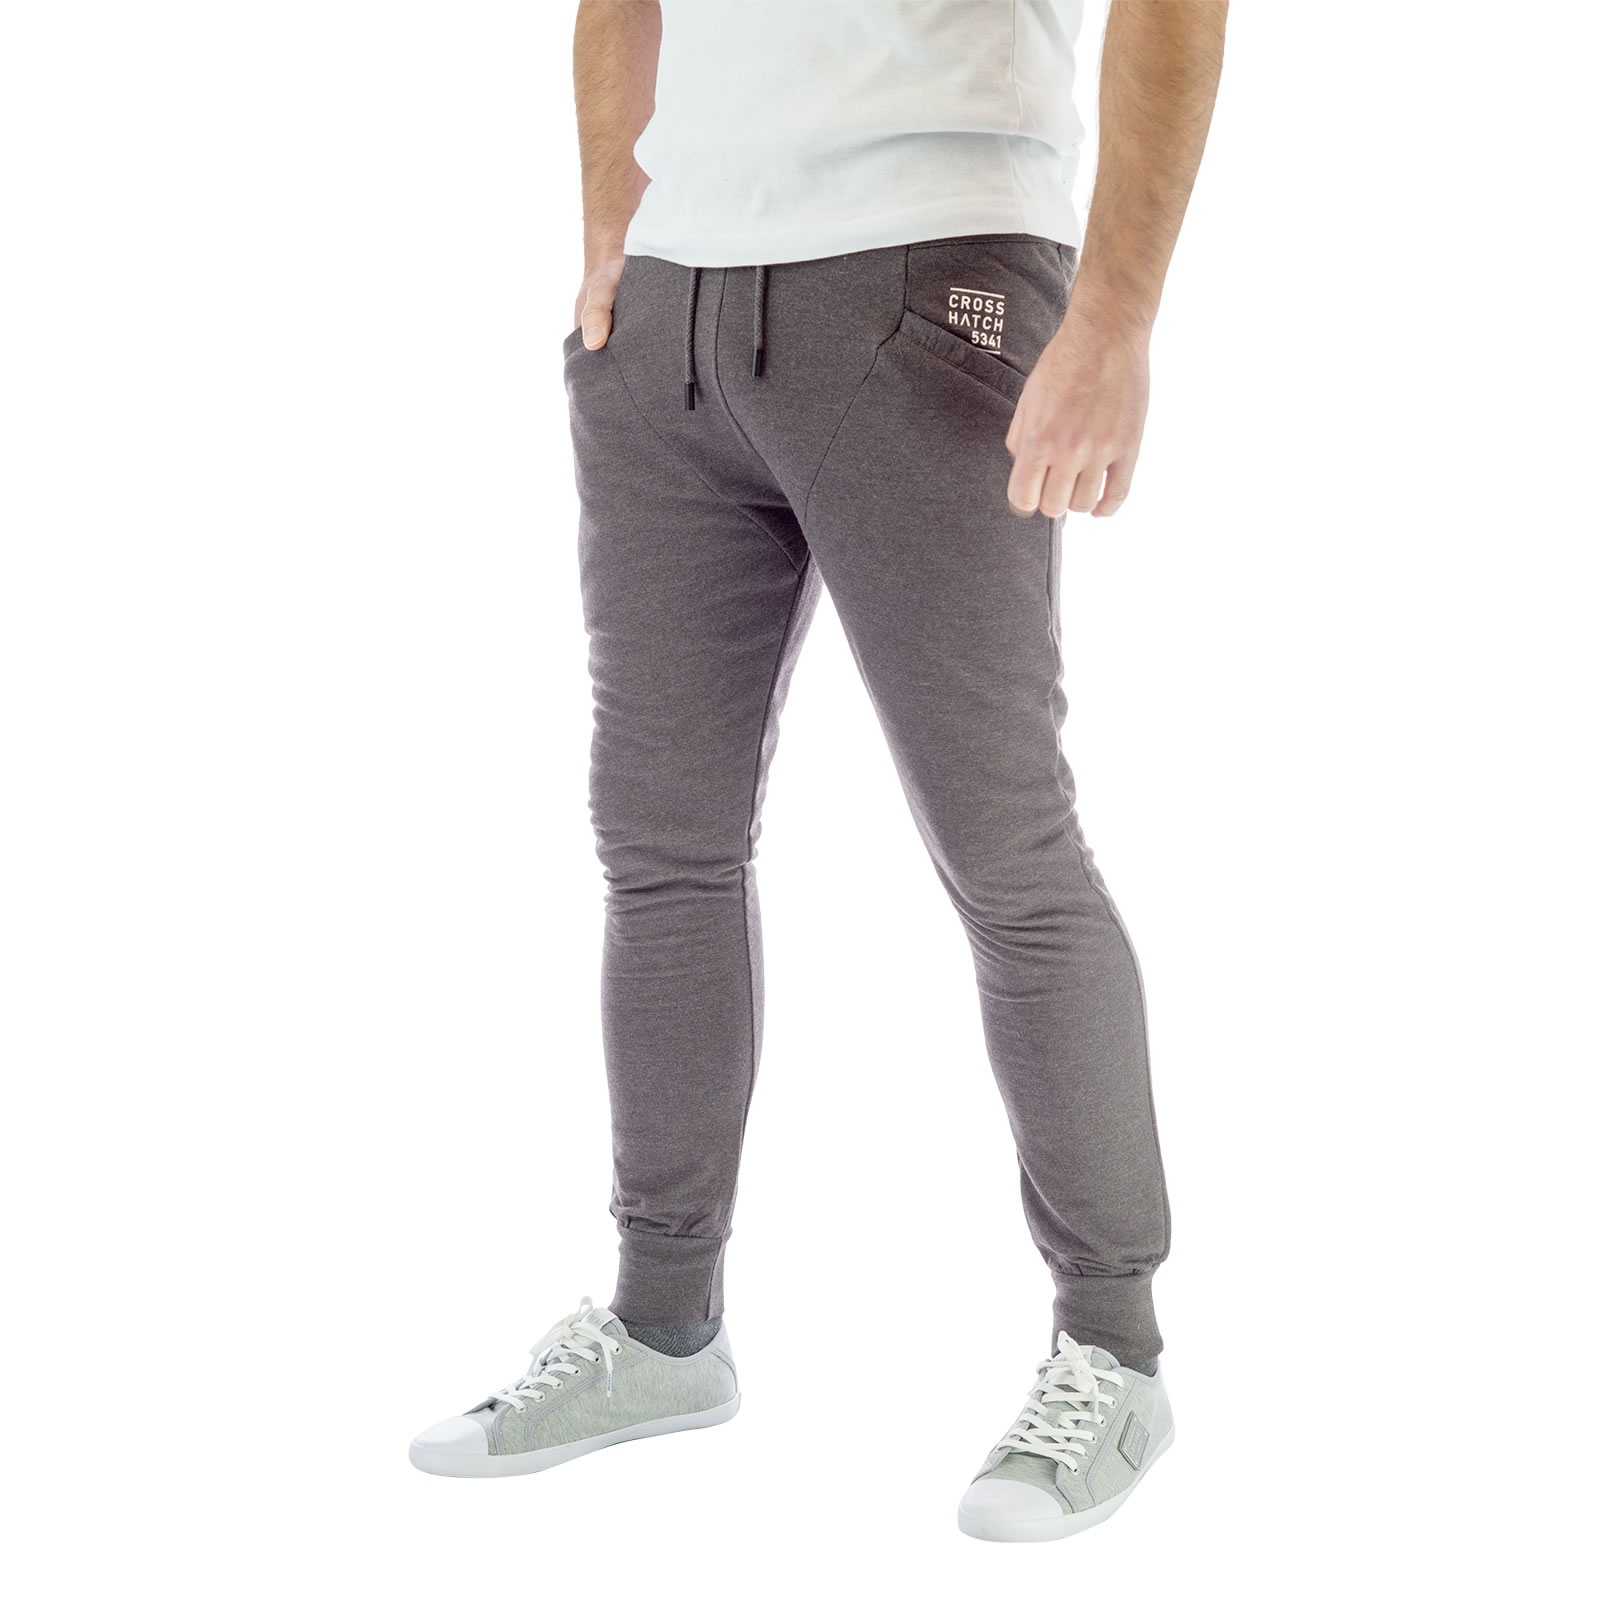 Skinny pants, skinny joggers, skinnies or whatever you prefer to call them, we can all agree that no men's leisurewear collection is complete without a couple of pairs.